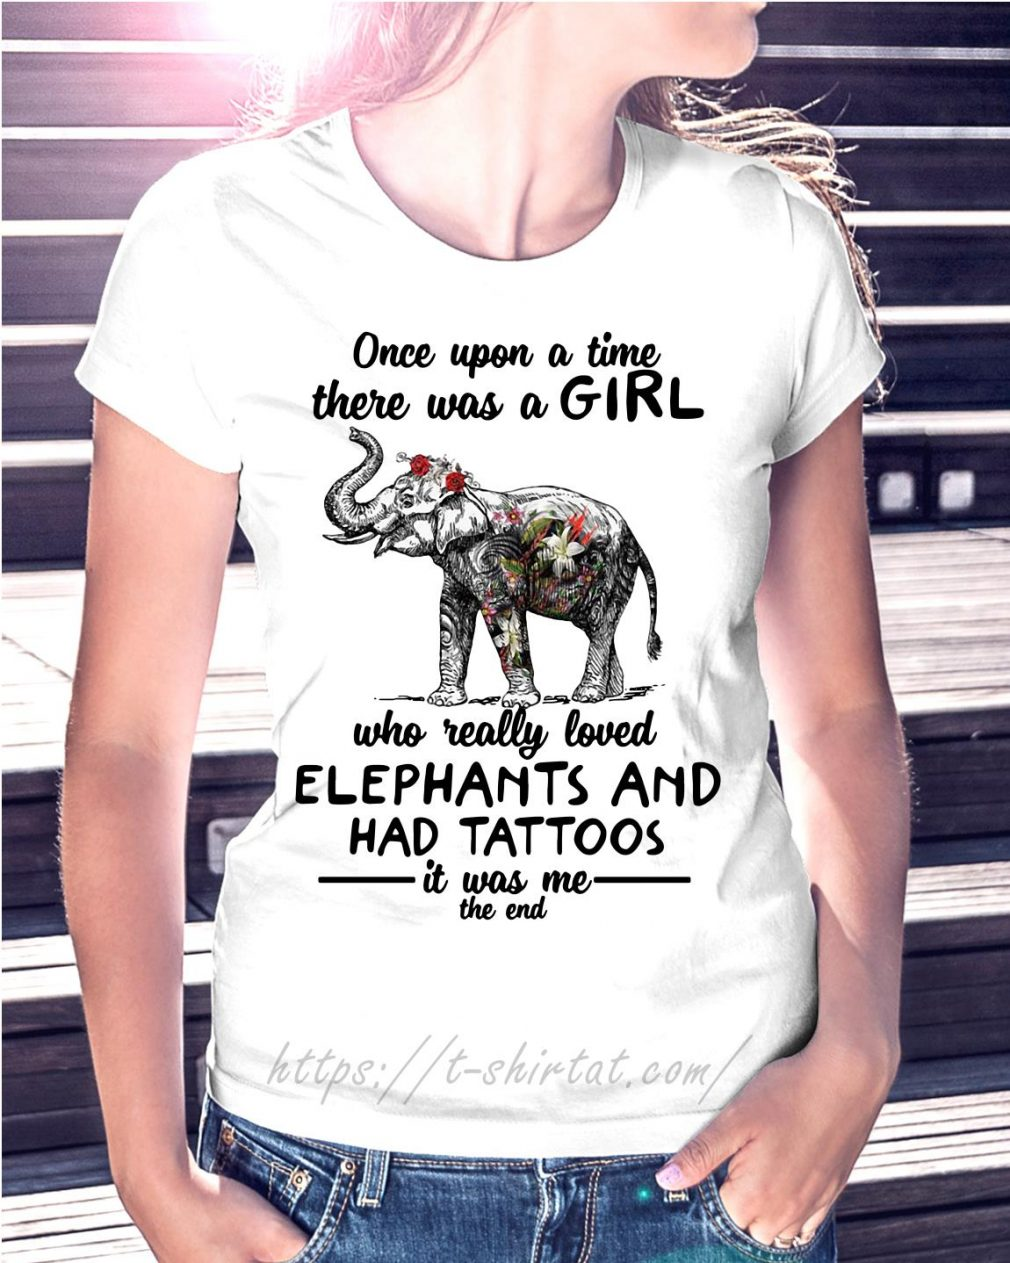 Once upon a time there was a girl who really loved elephants and had tattoos